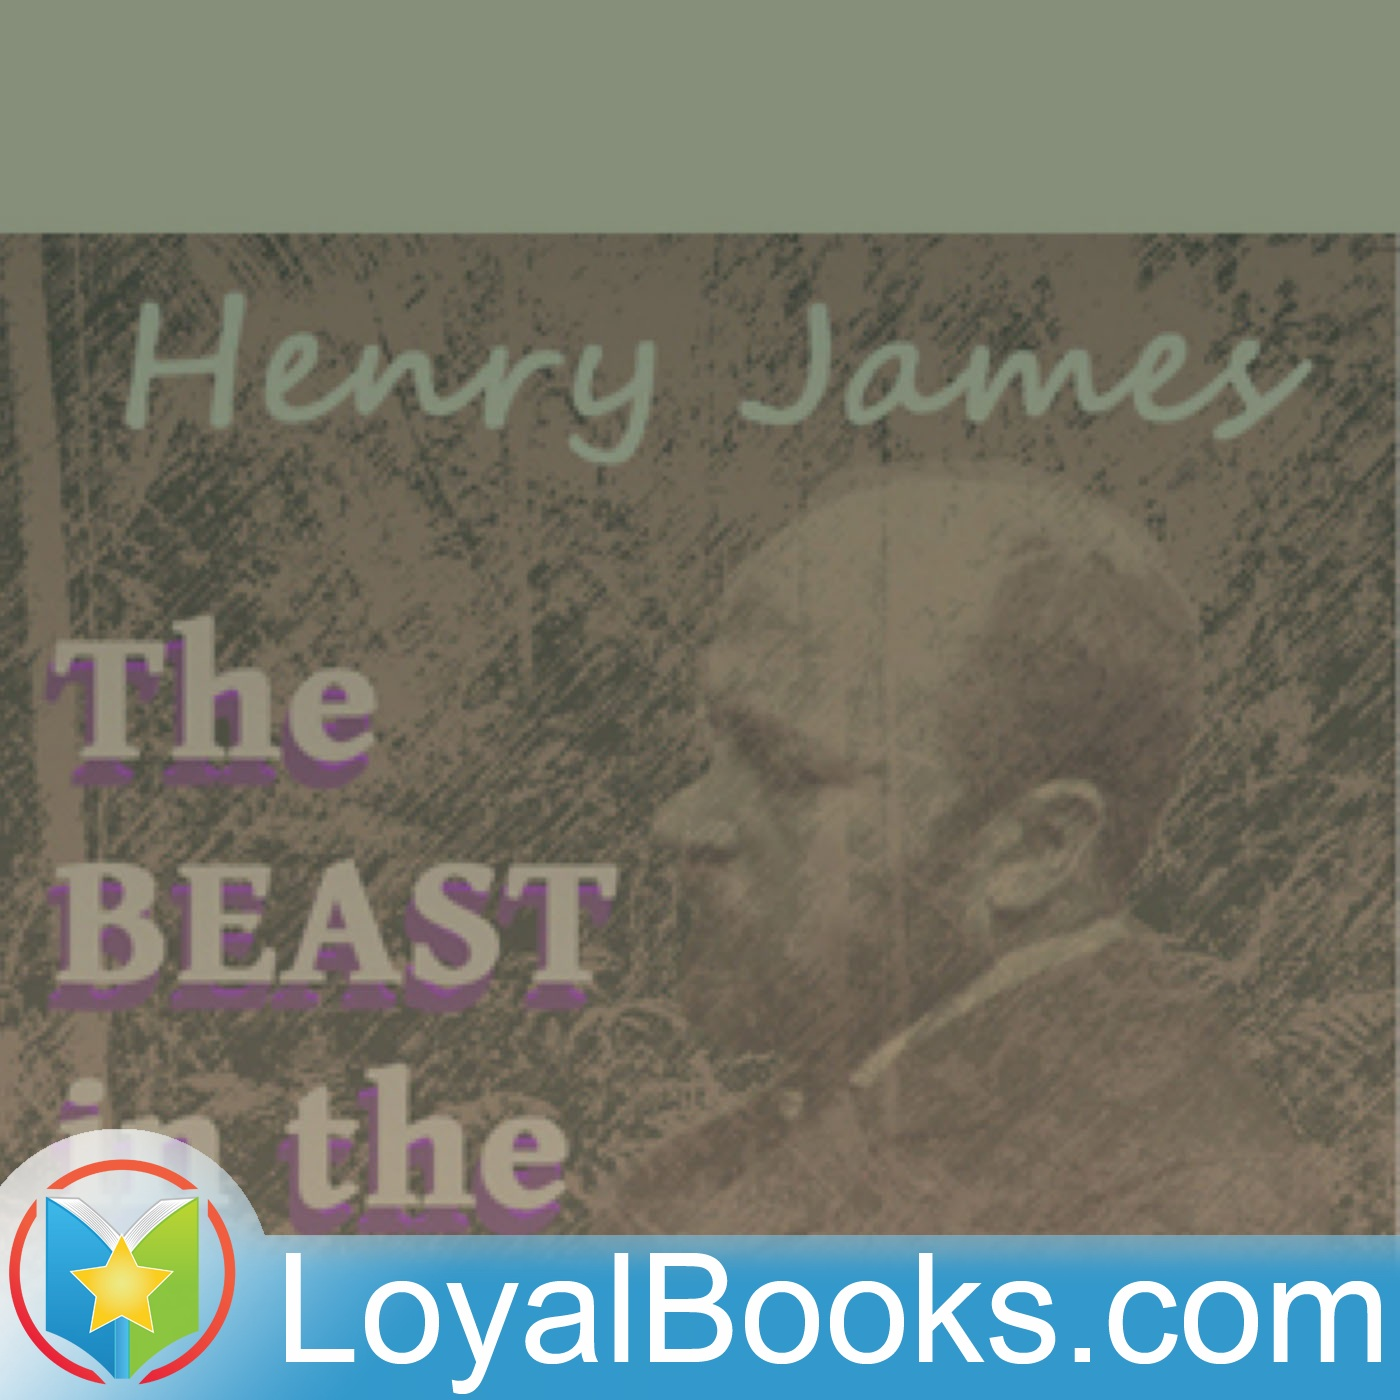 irony and loss in the beast in the jungle a novella by henry james